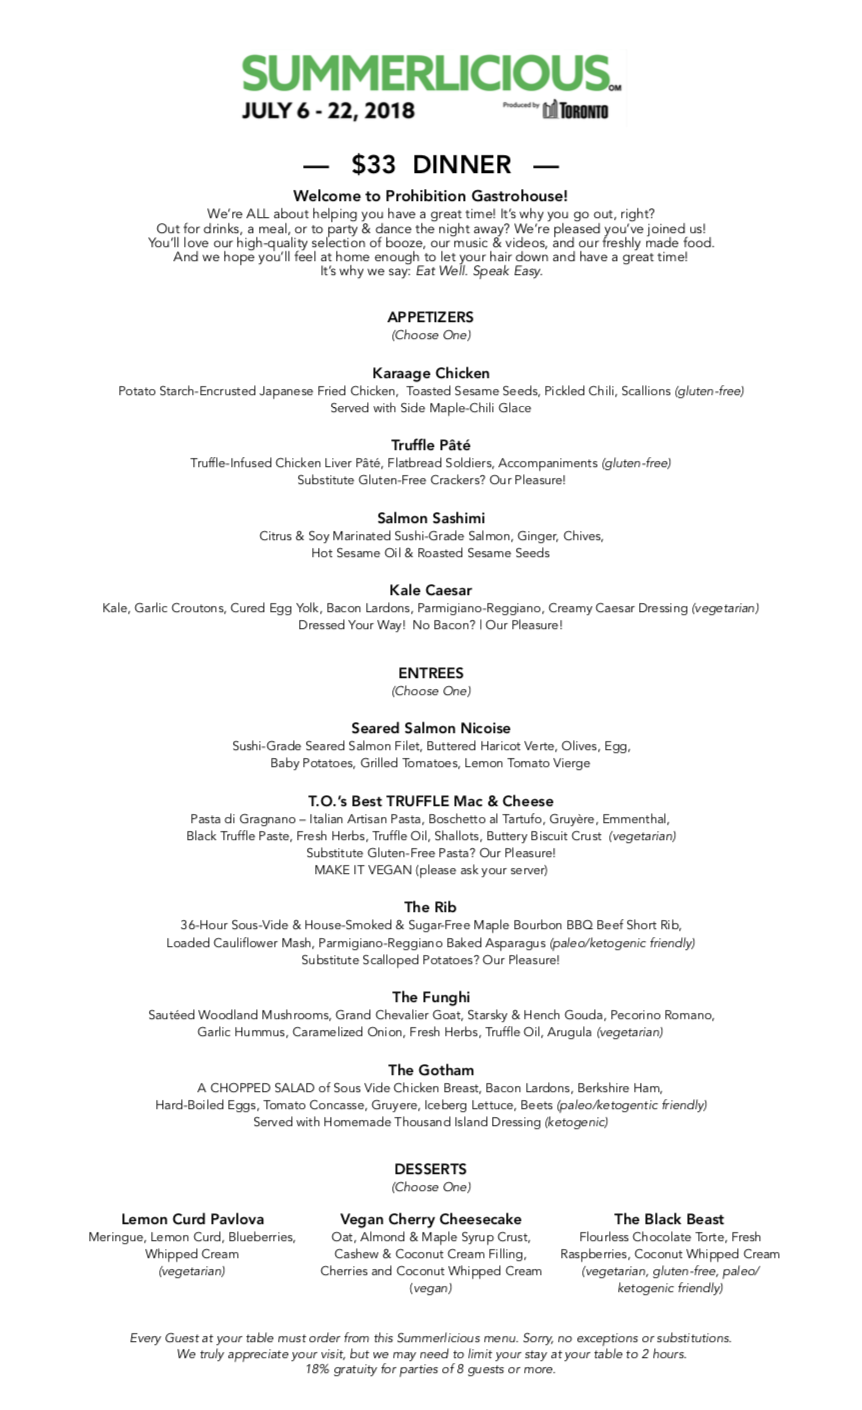 Prohibition Gastrohouse - Summerlicious 2018 - Dinner Menu